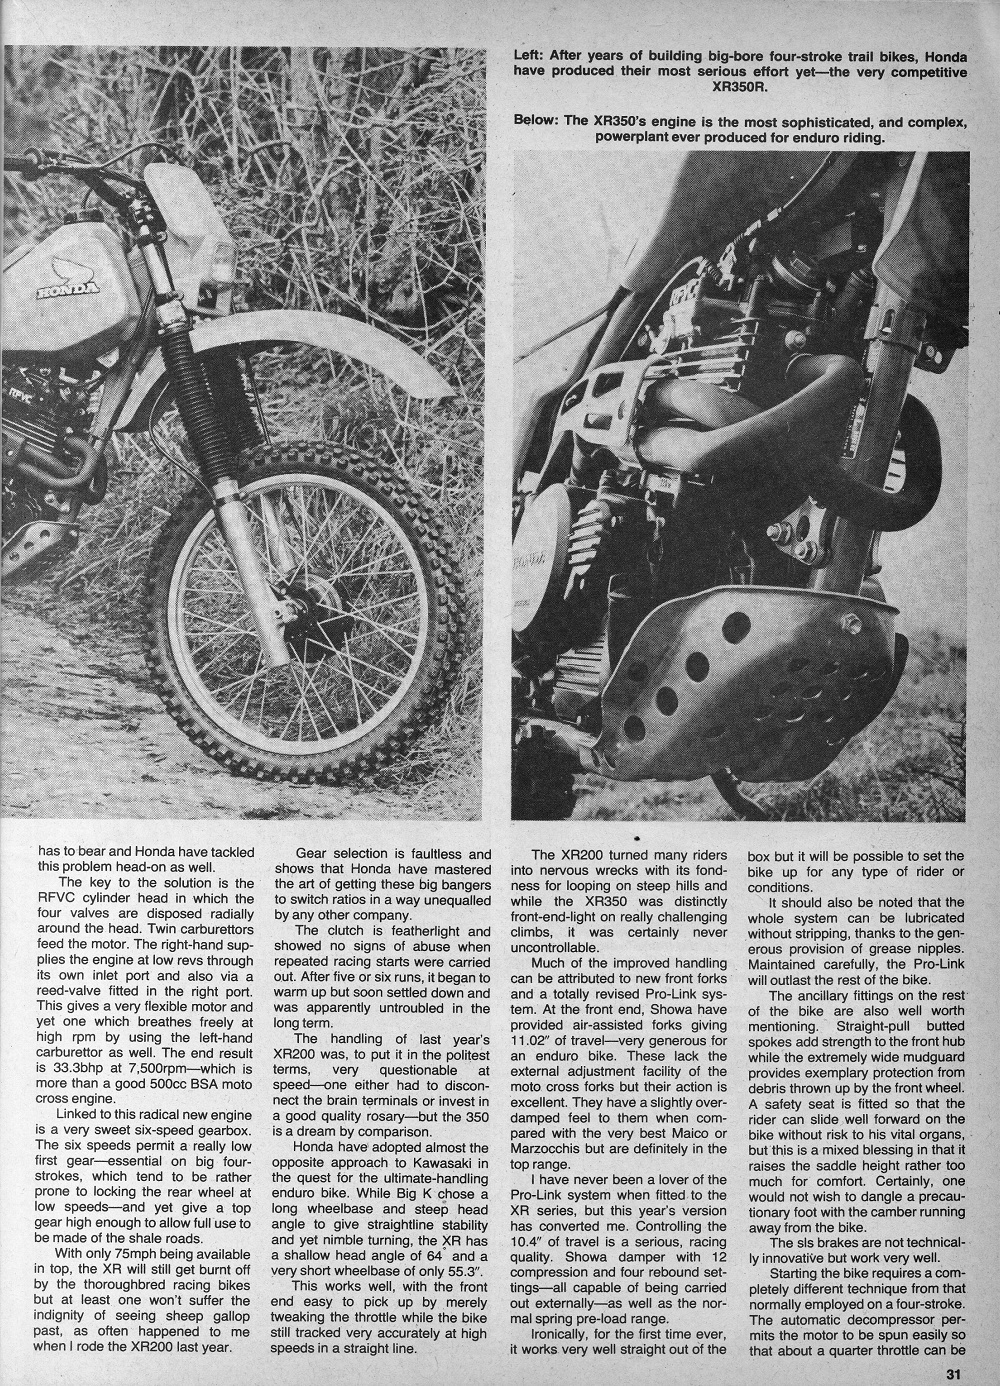 1983 Honda XR350R road test.2.jpg